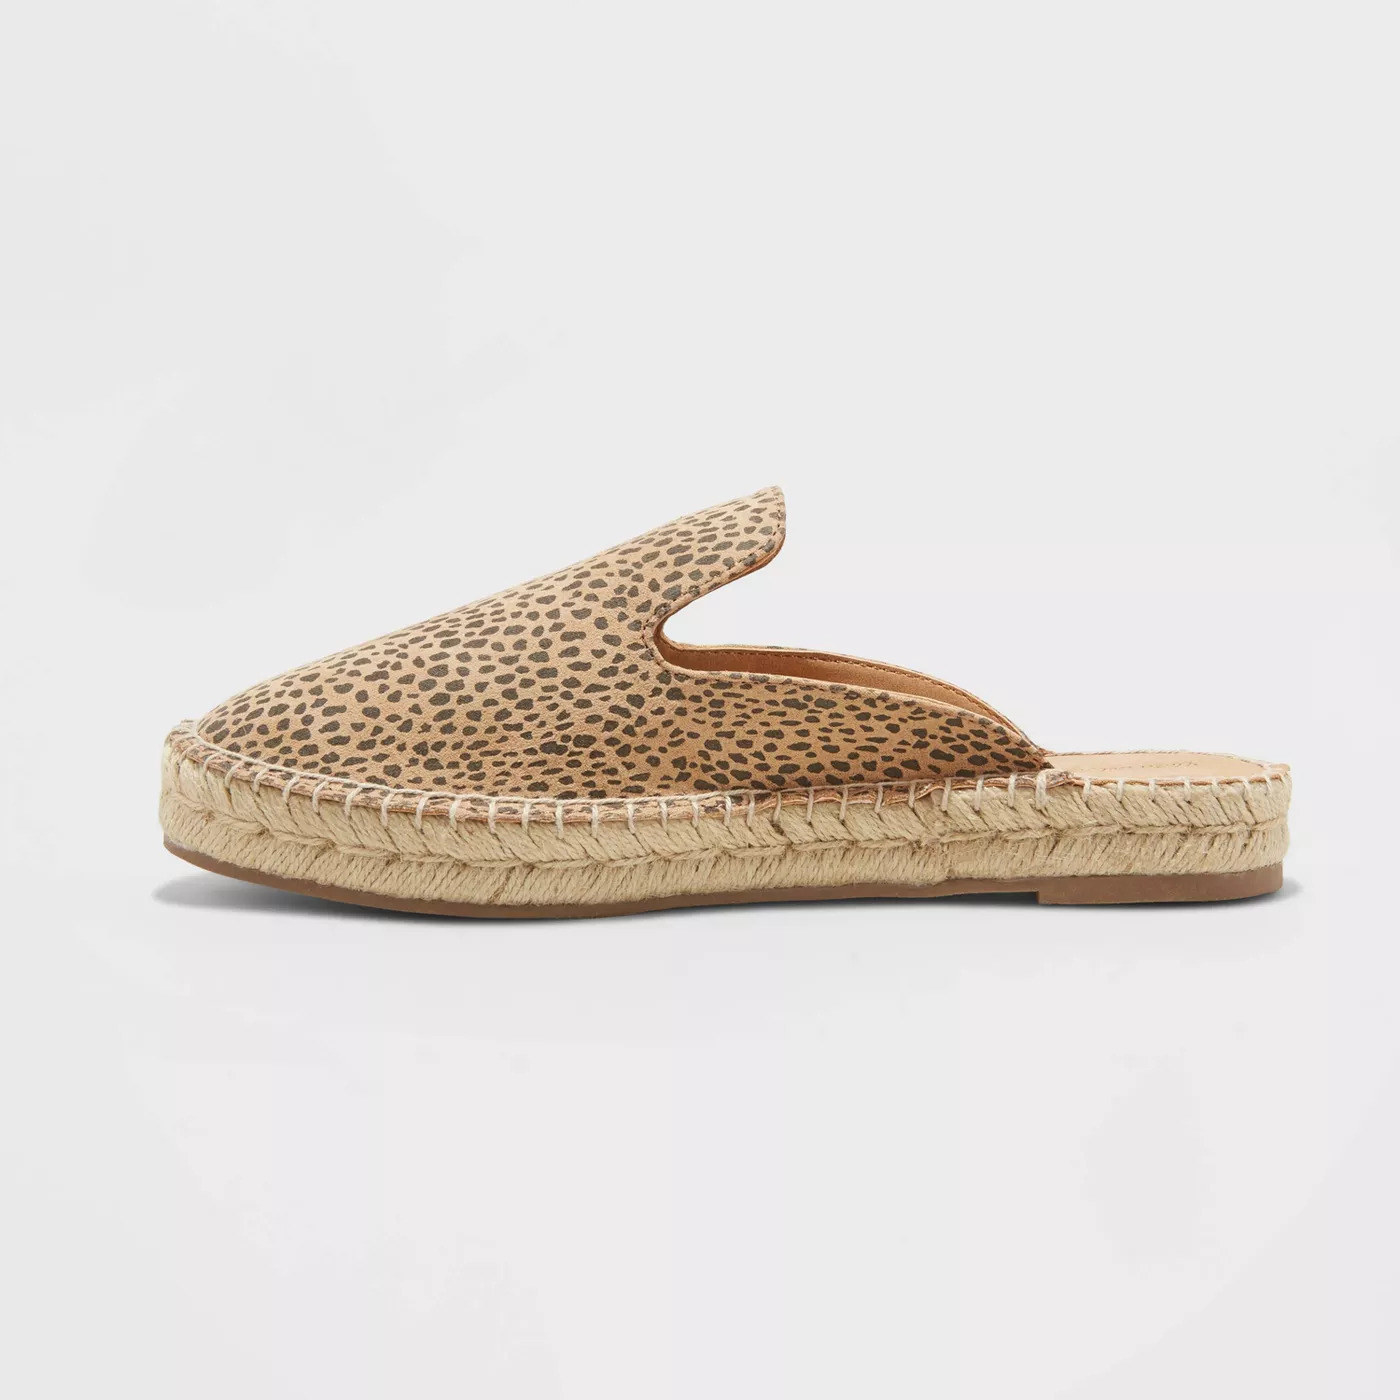 a beige and brown animal print mule with an espadrille sole